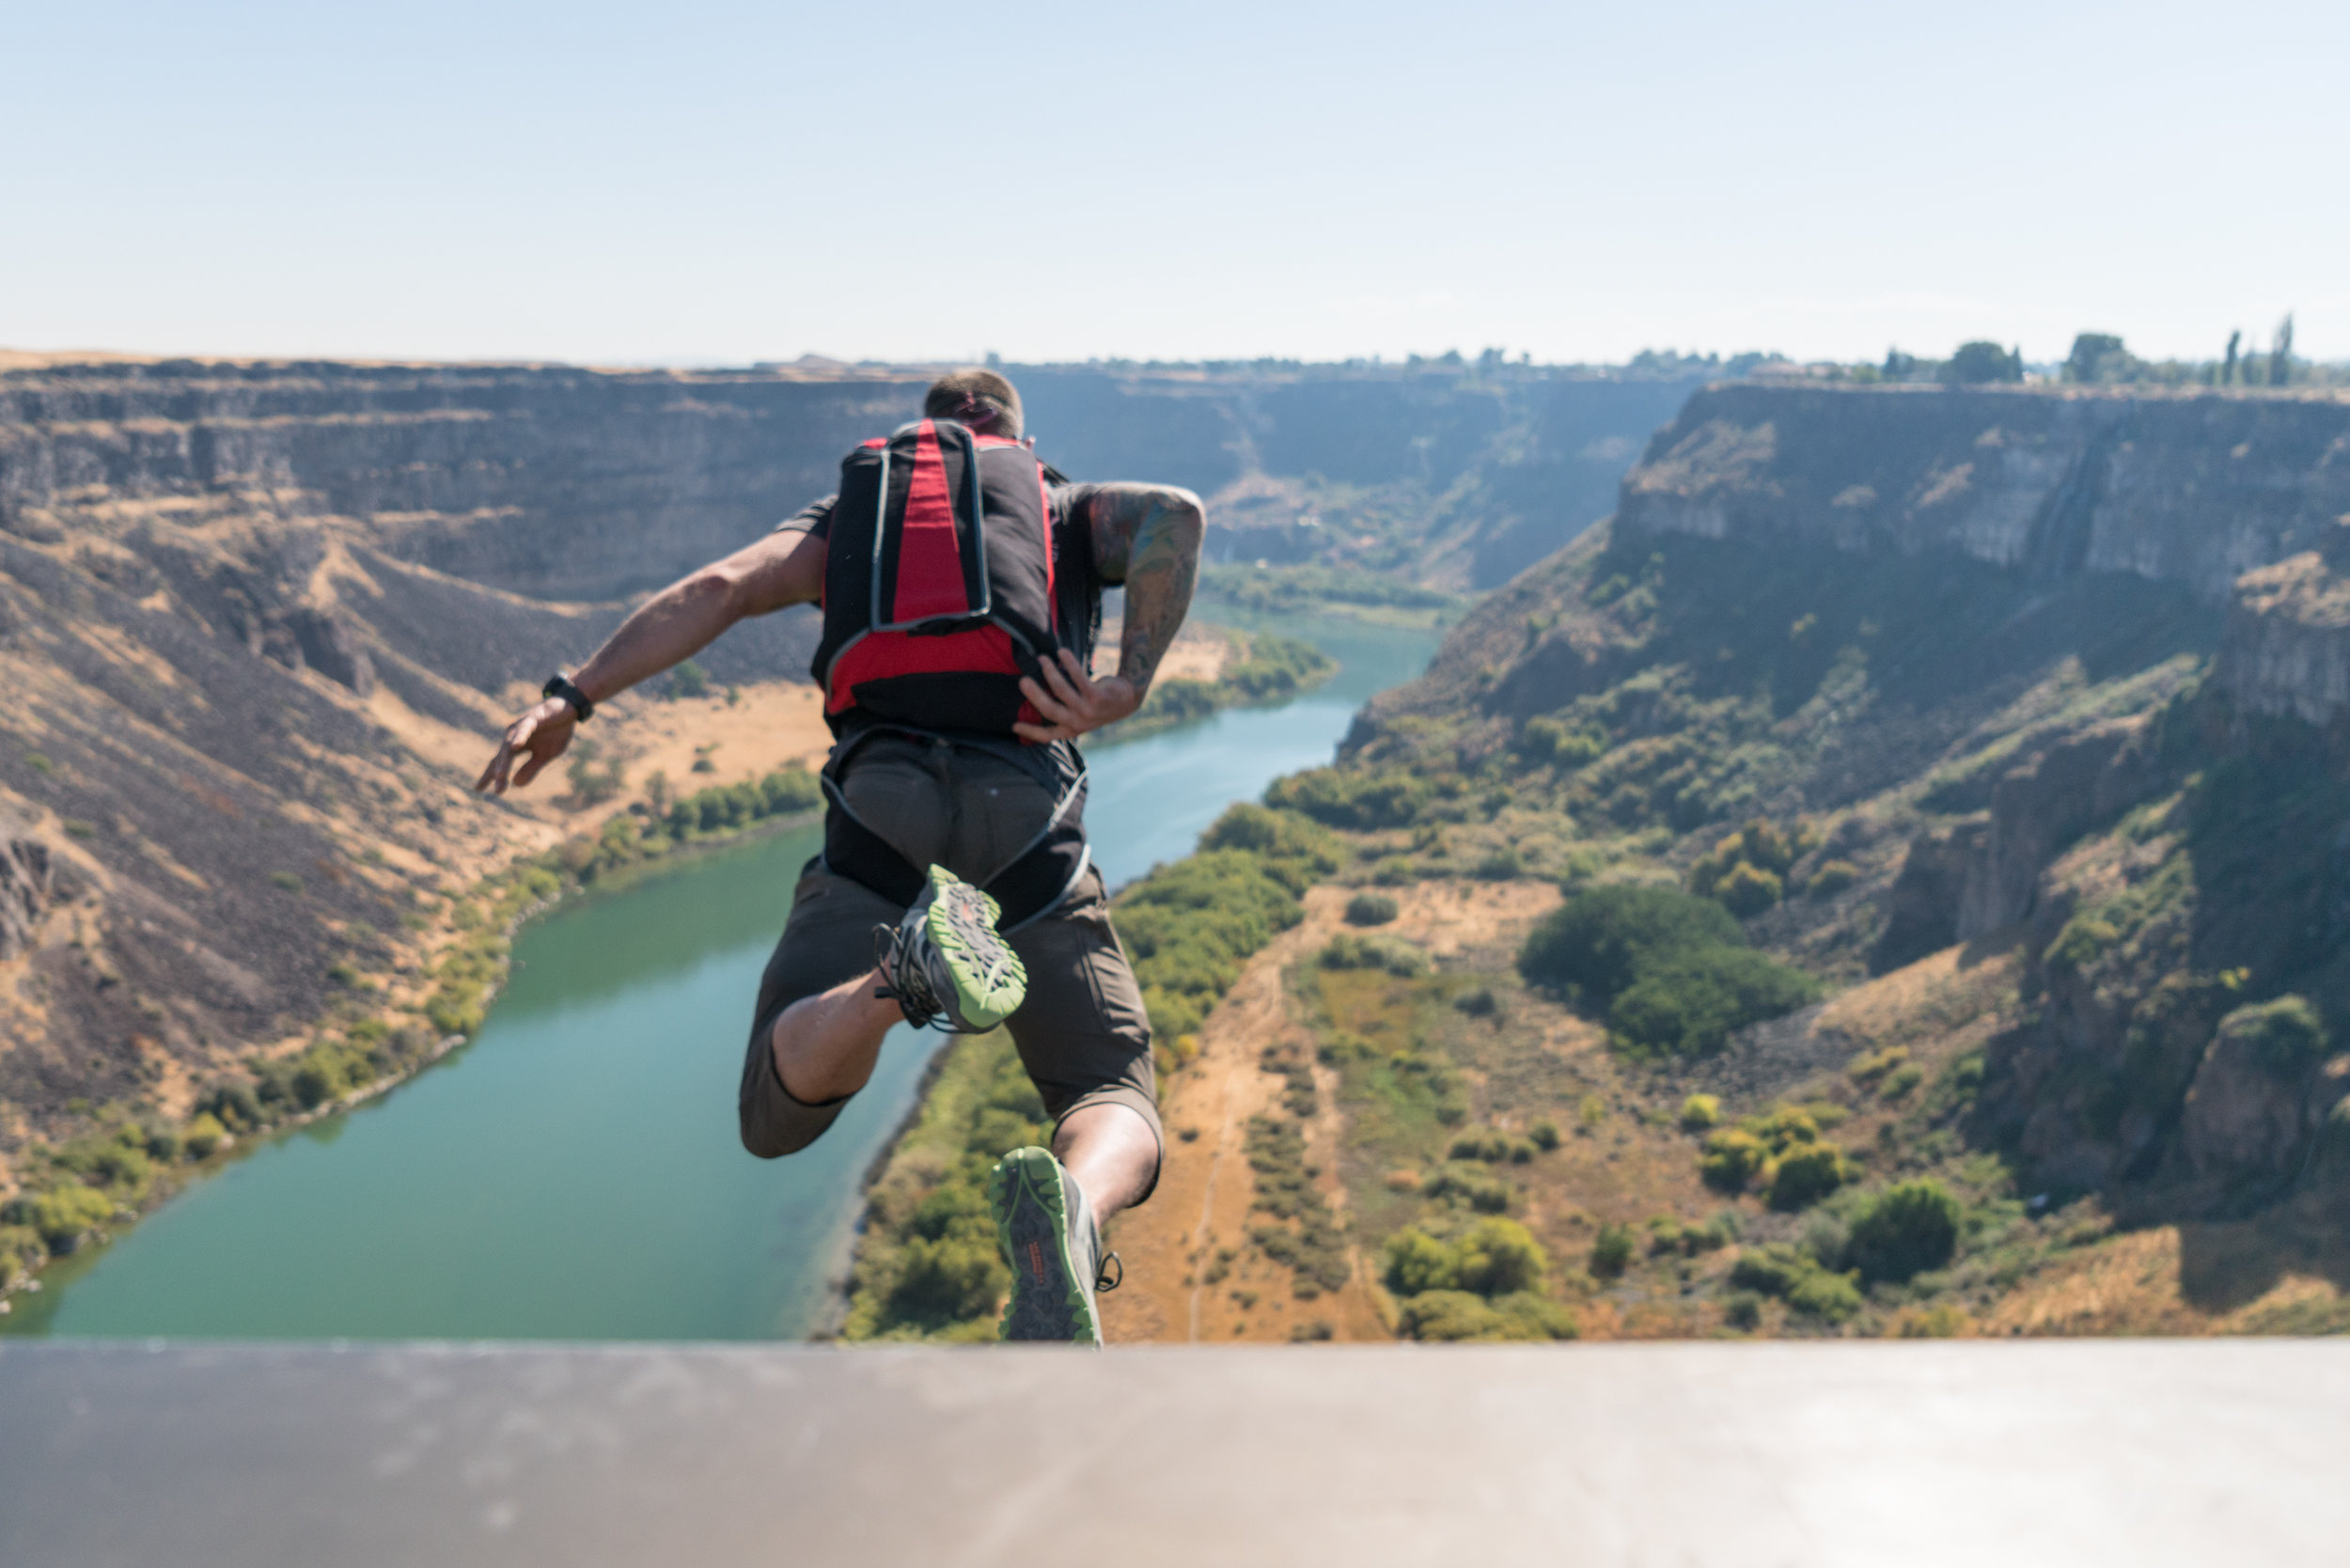 Danny leaping off the railing of the Perrine Bridge, with the Snake River 486 feet below. Photo by Scott Rogers